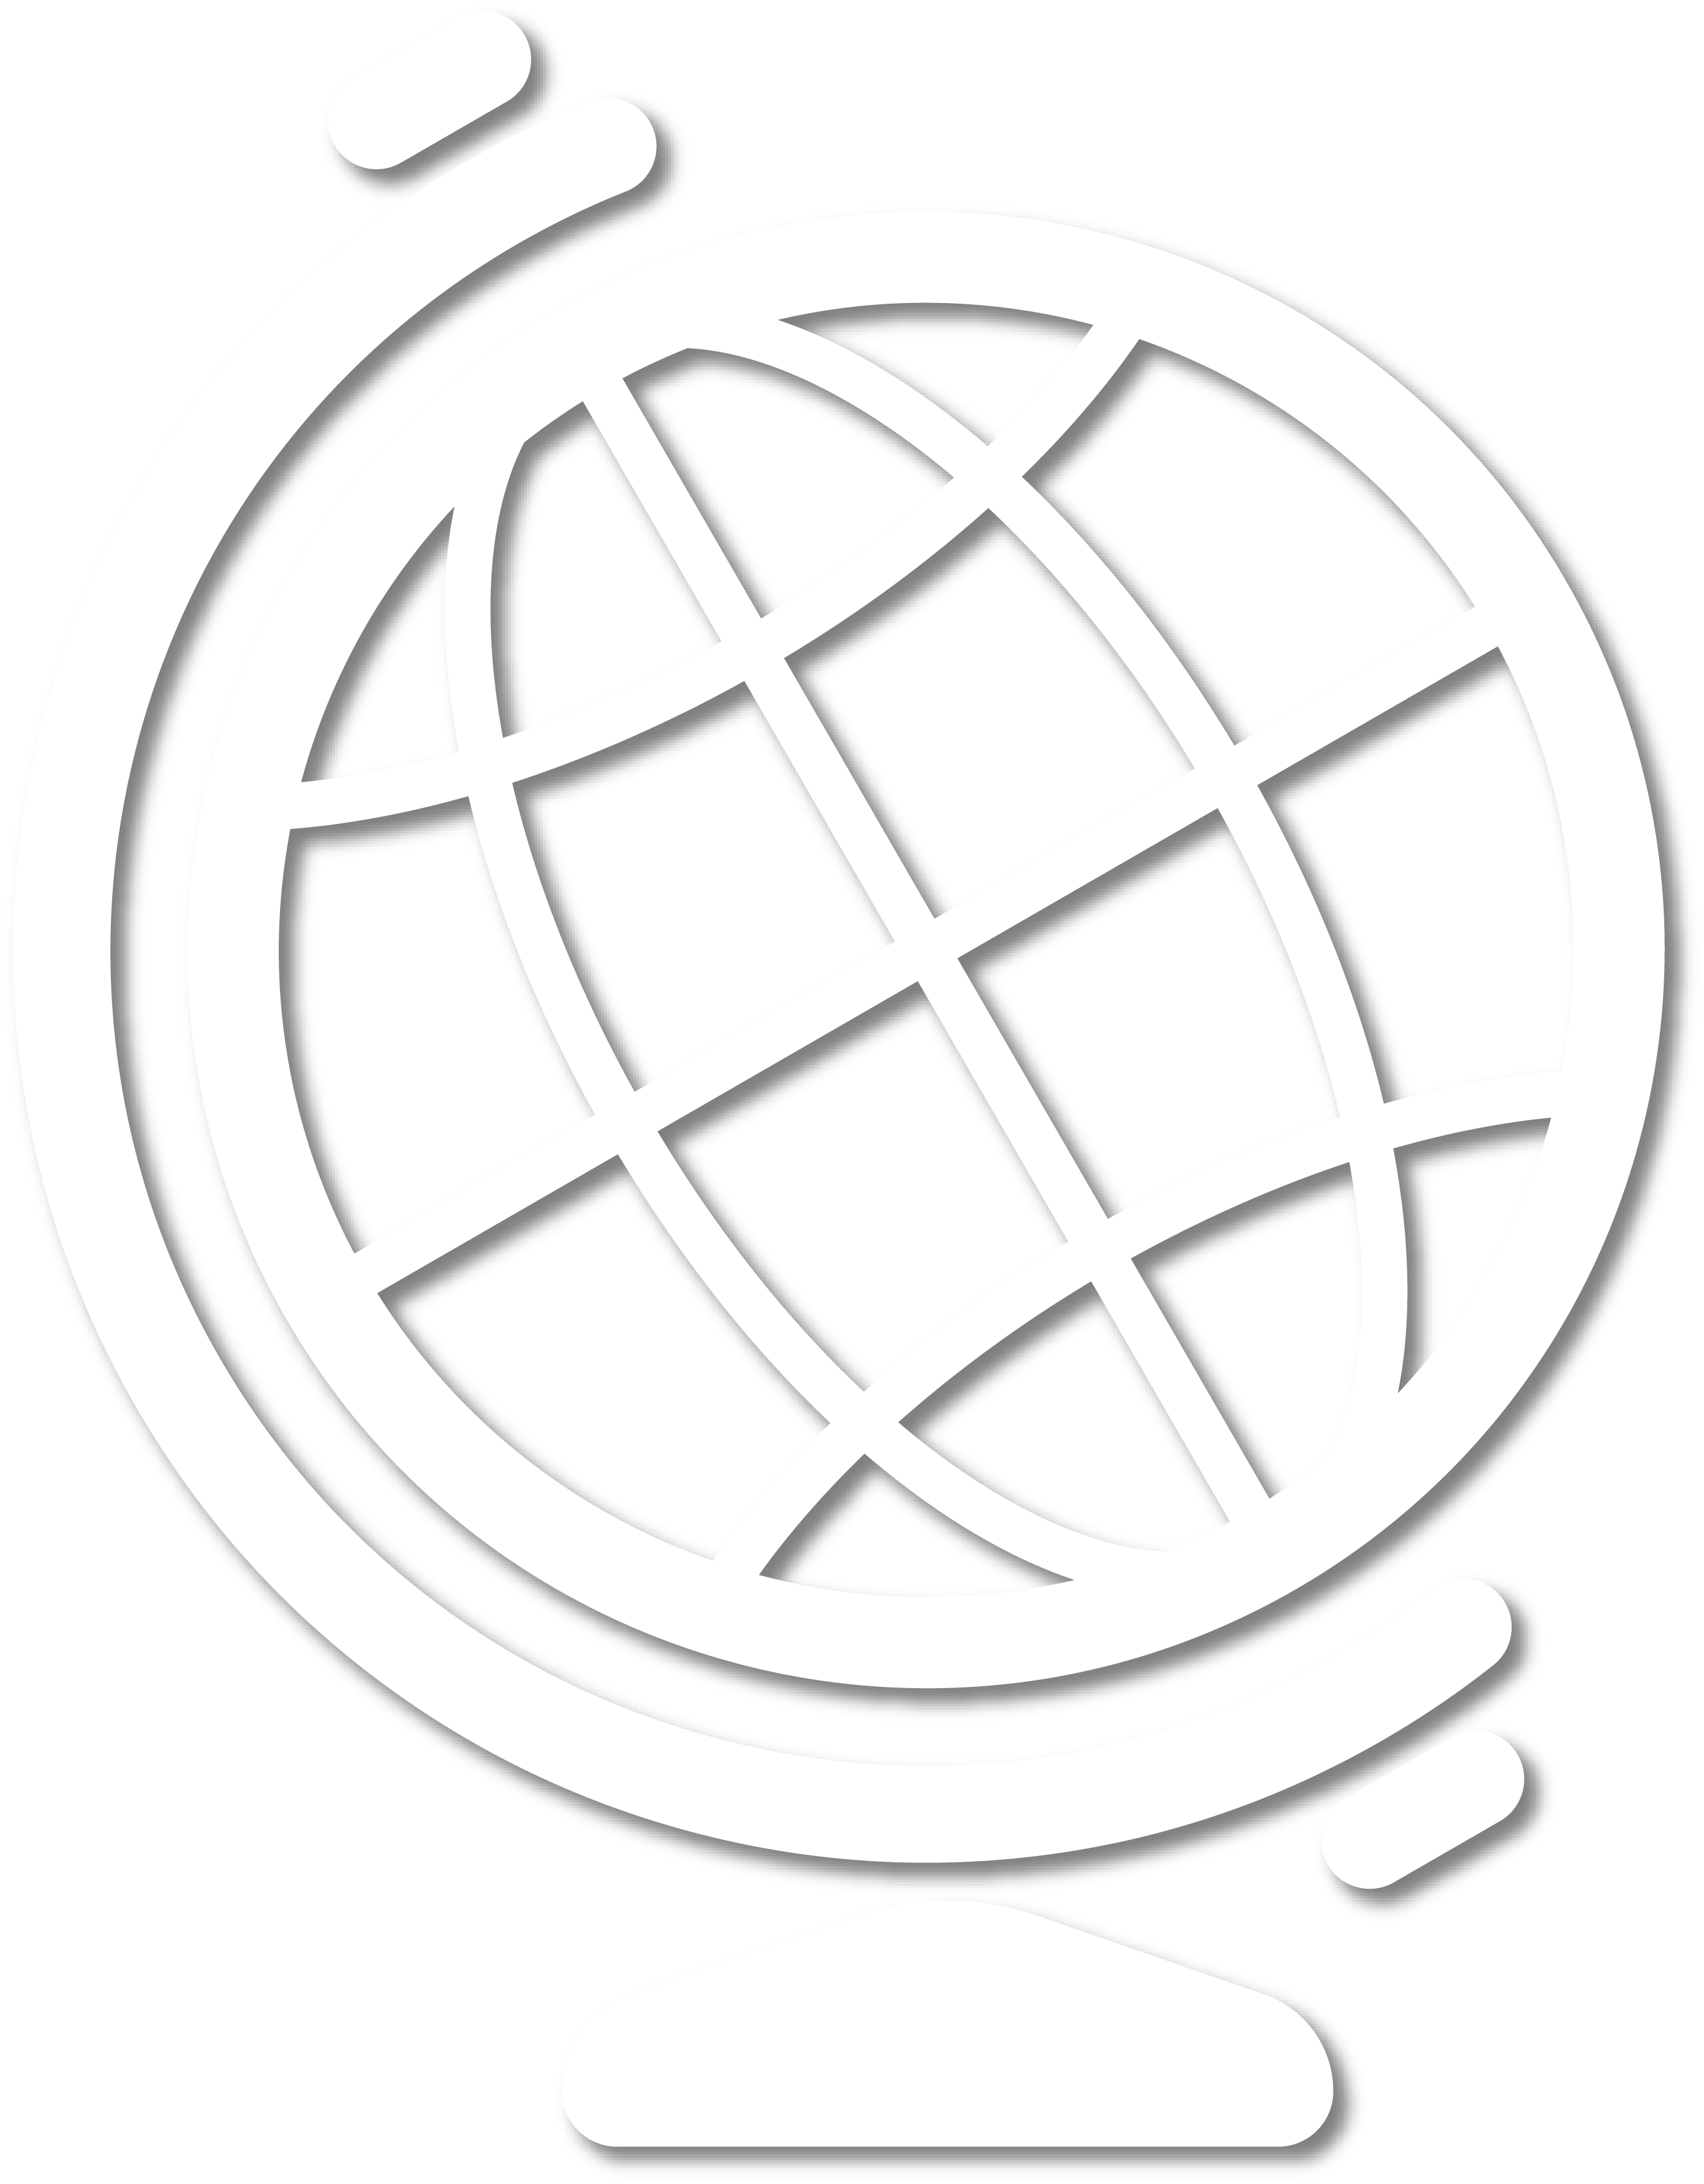 planet-earth (1).png